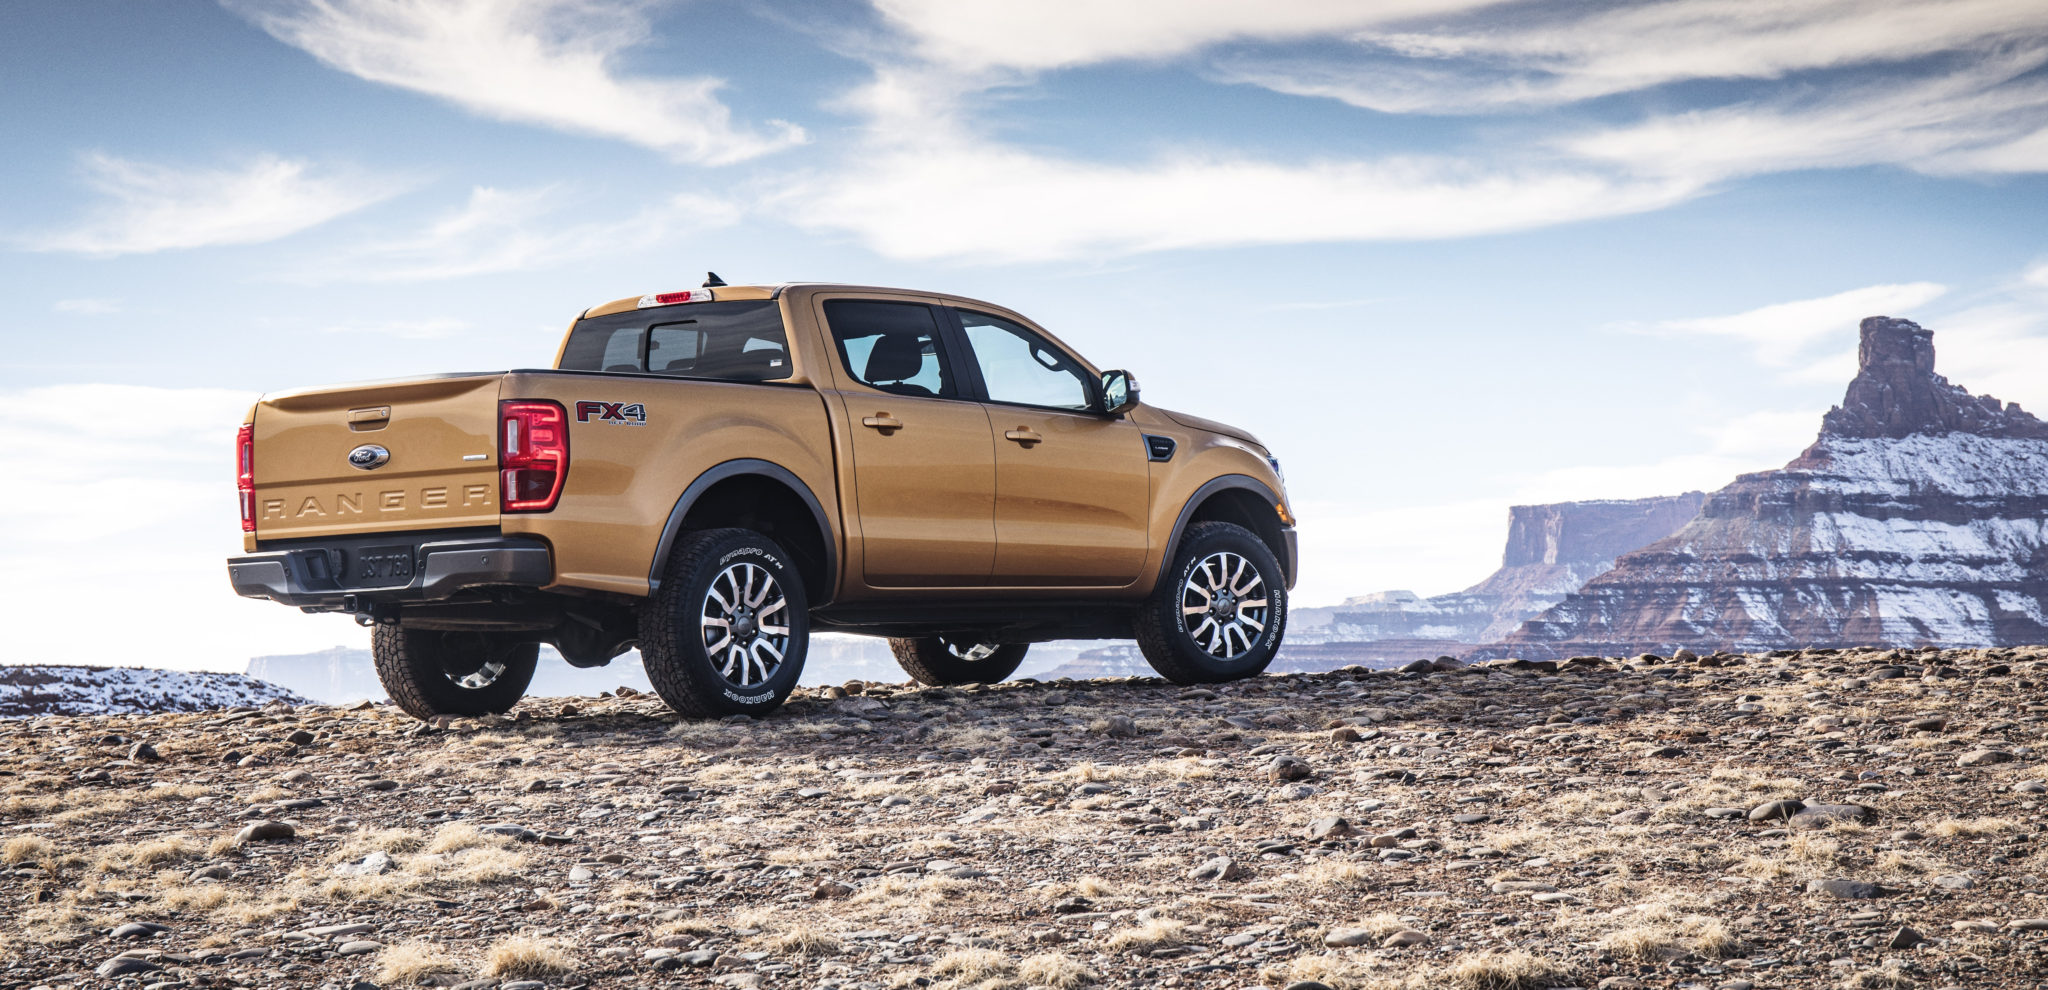 Ford Shows Off the New Ranger, and It May Be Perfect for Small RV Towing |  RV Miles